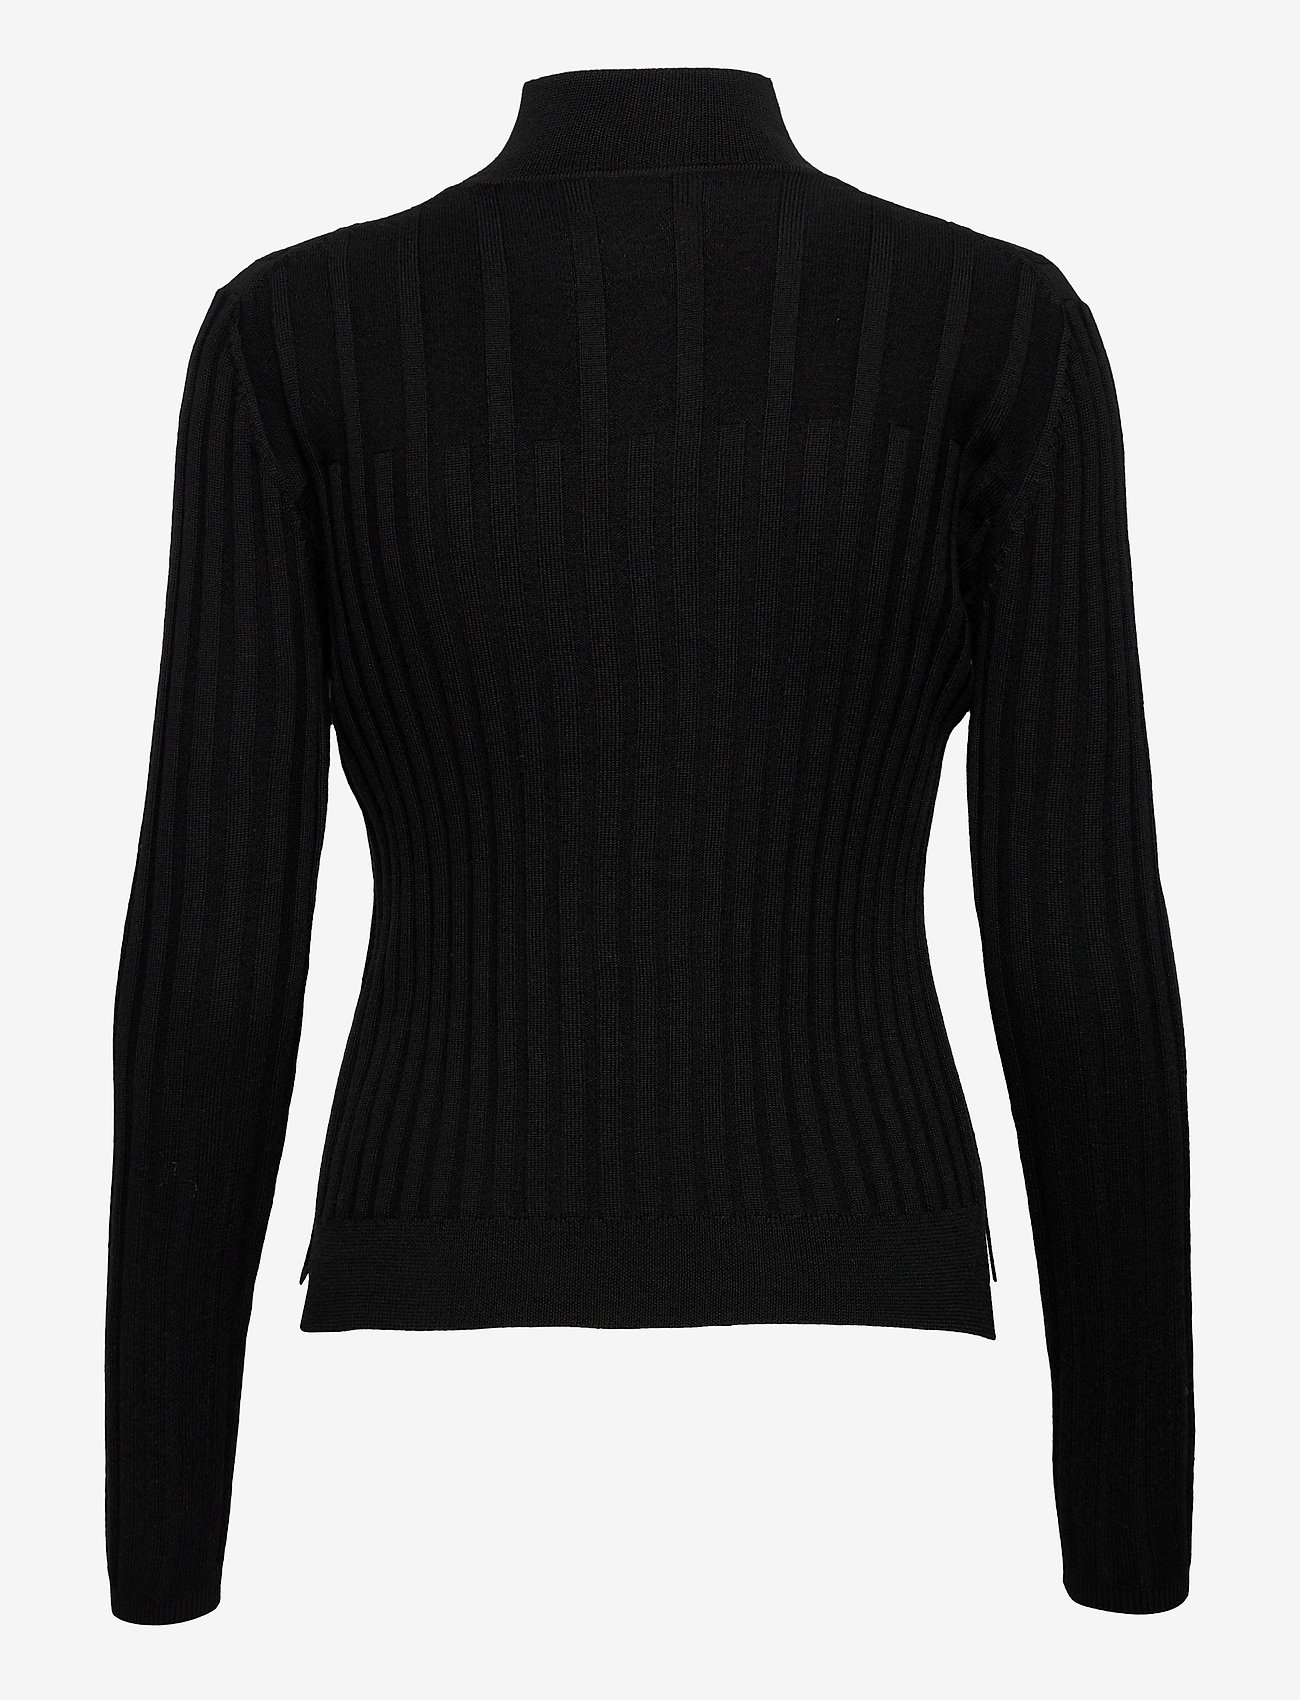 SAND - Fellini F - Kilani - turtlenecks - black - 1